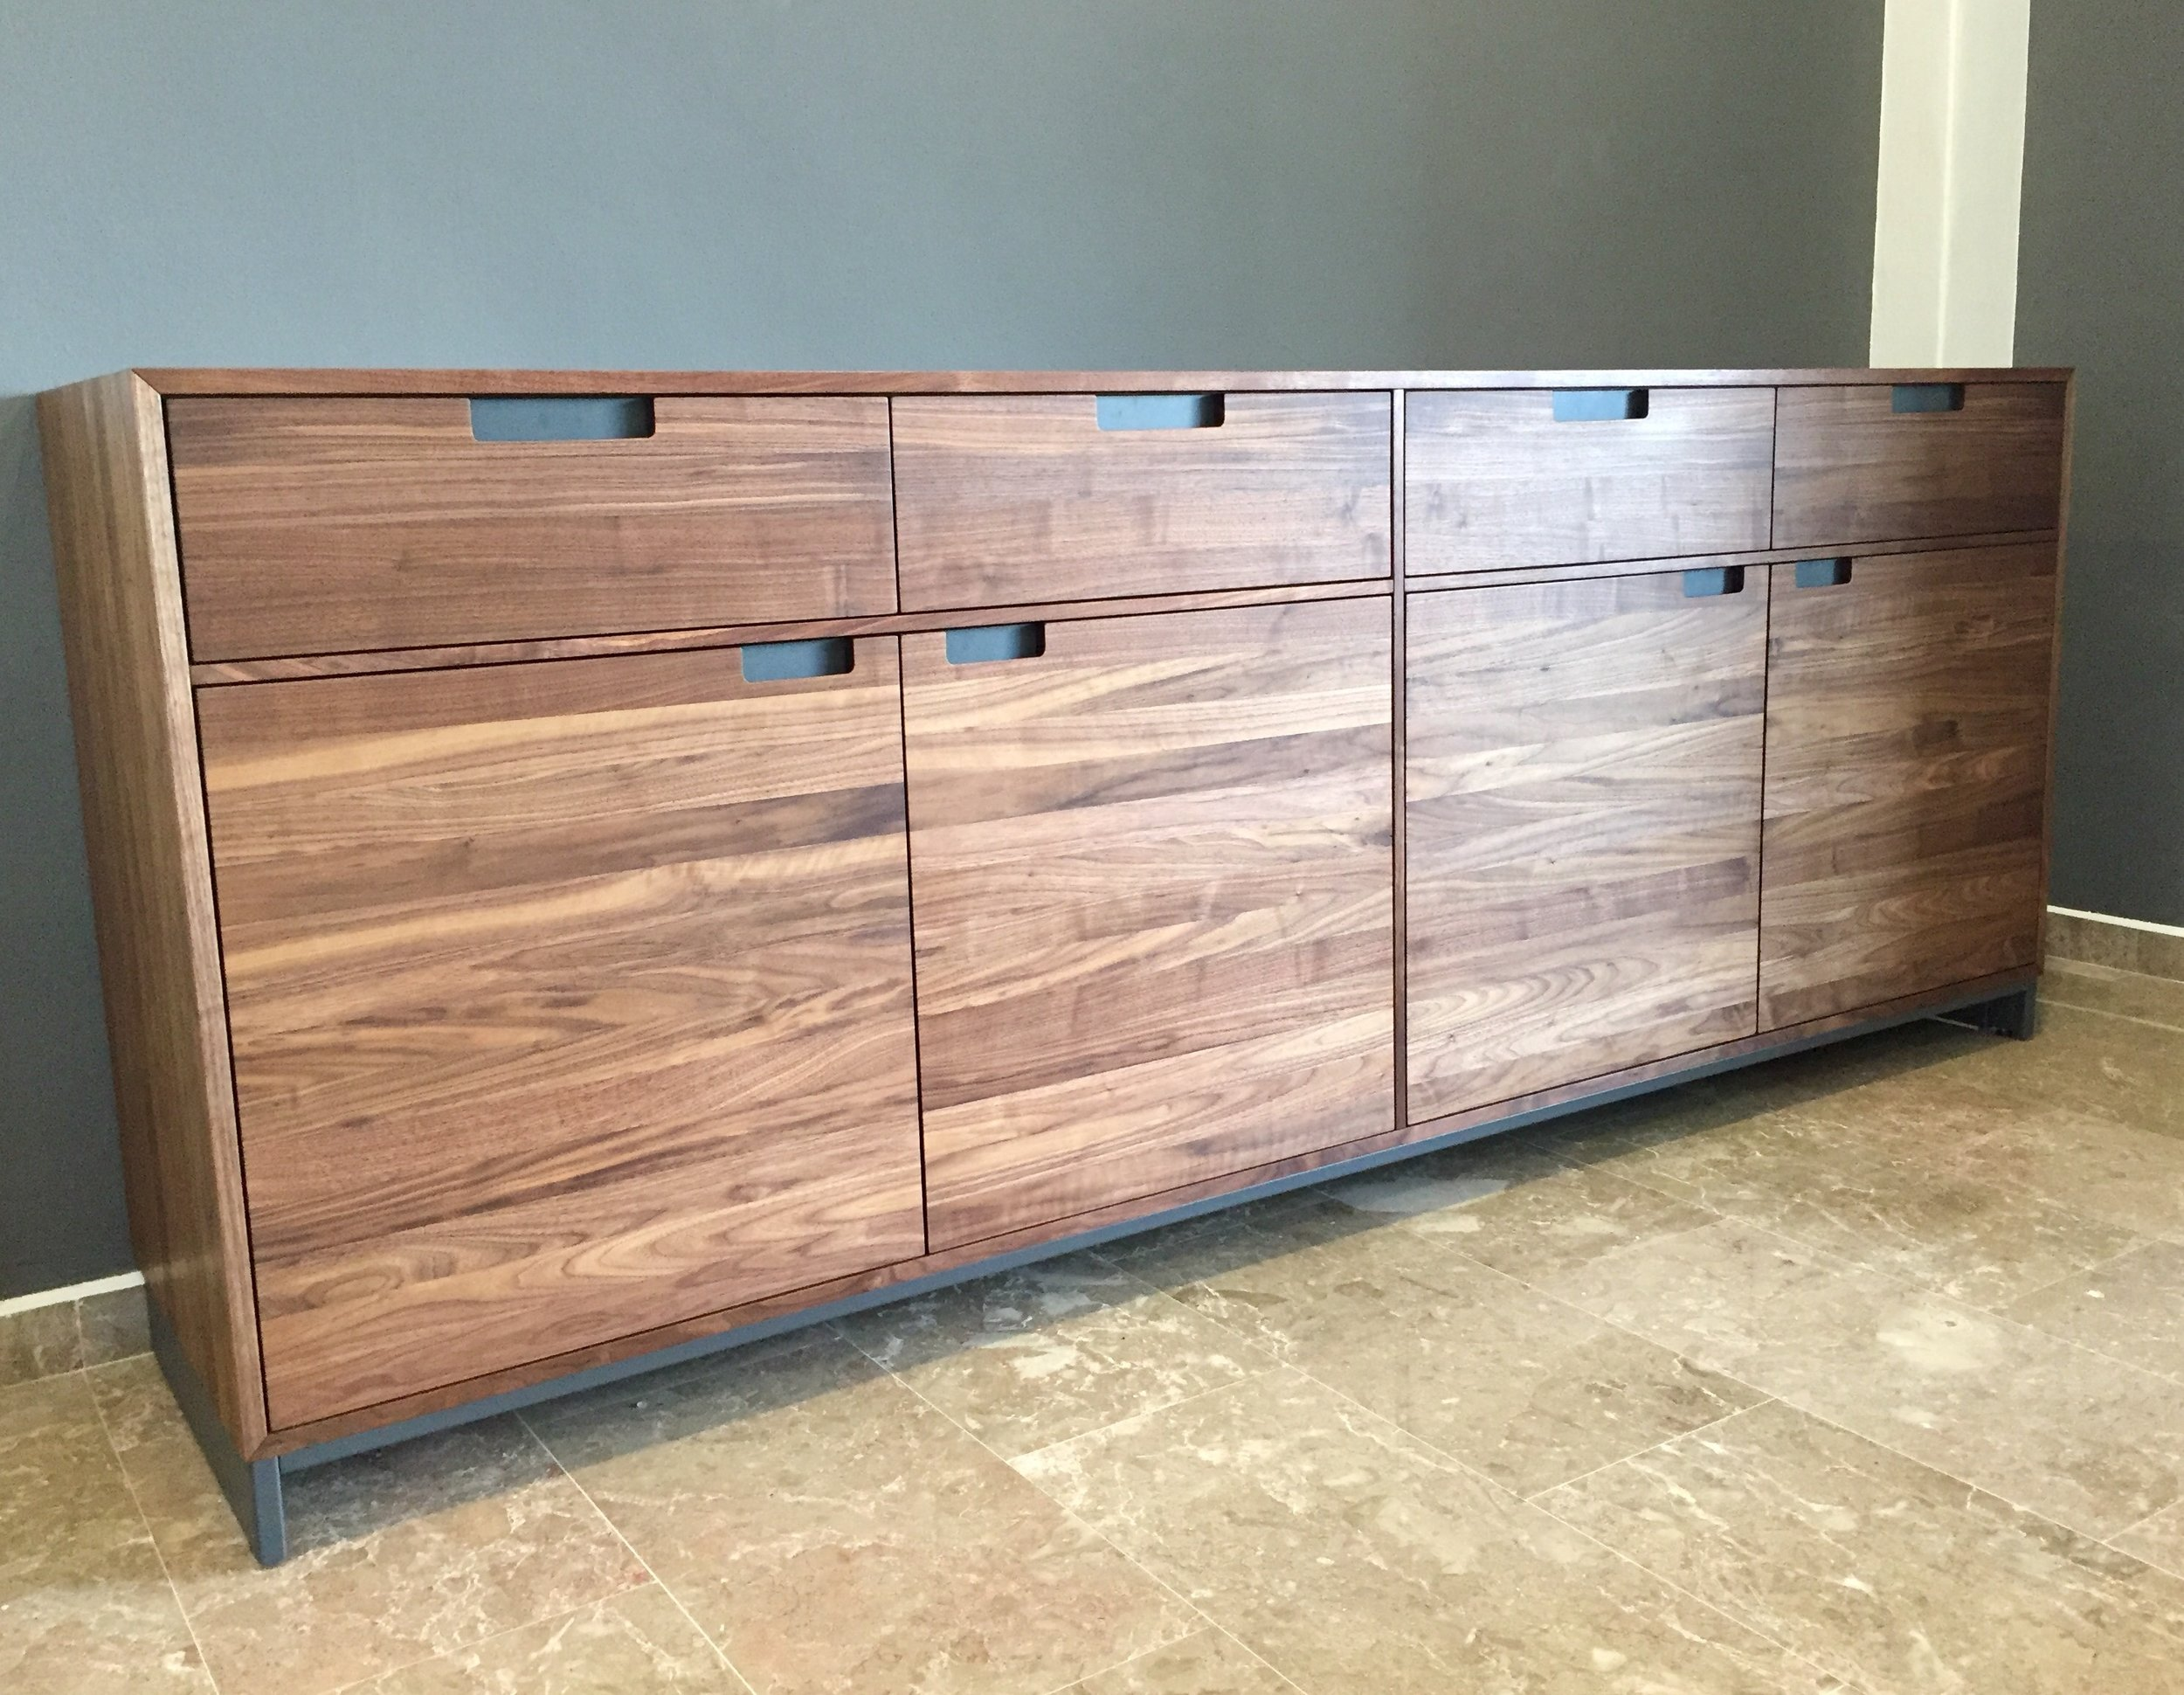 Standing handsome at the entrance of a 1700 sq ft apartment is a 2.35m long, 0.5m deep, with a 0.9m tall piece of solid Walnut Sideboard on powder coated steel legs.